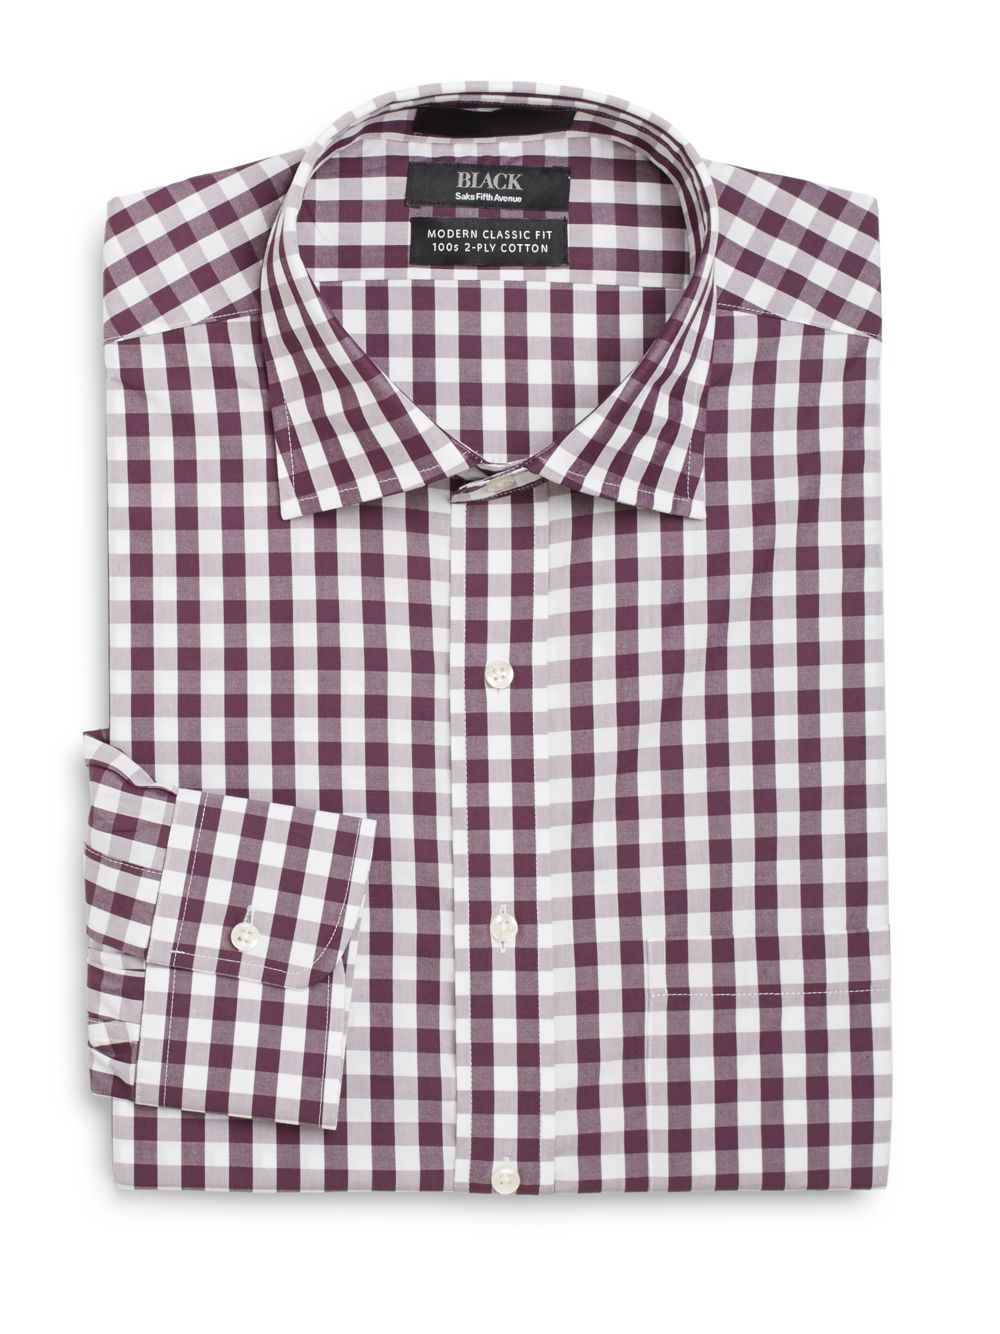 Saks fifth avenue black label modern classic fit gingham for Men s purple gingham shirt